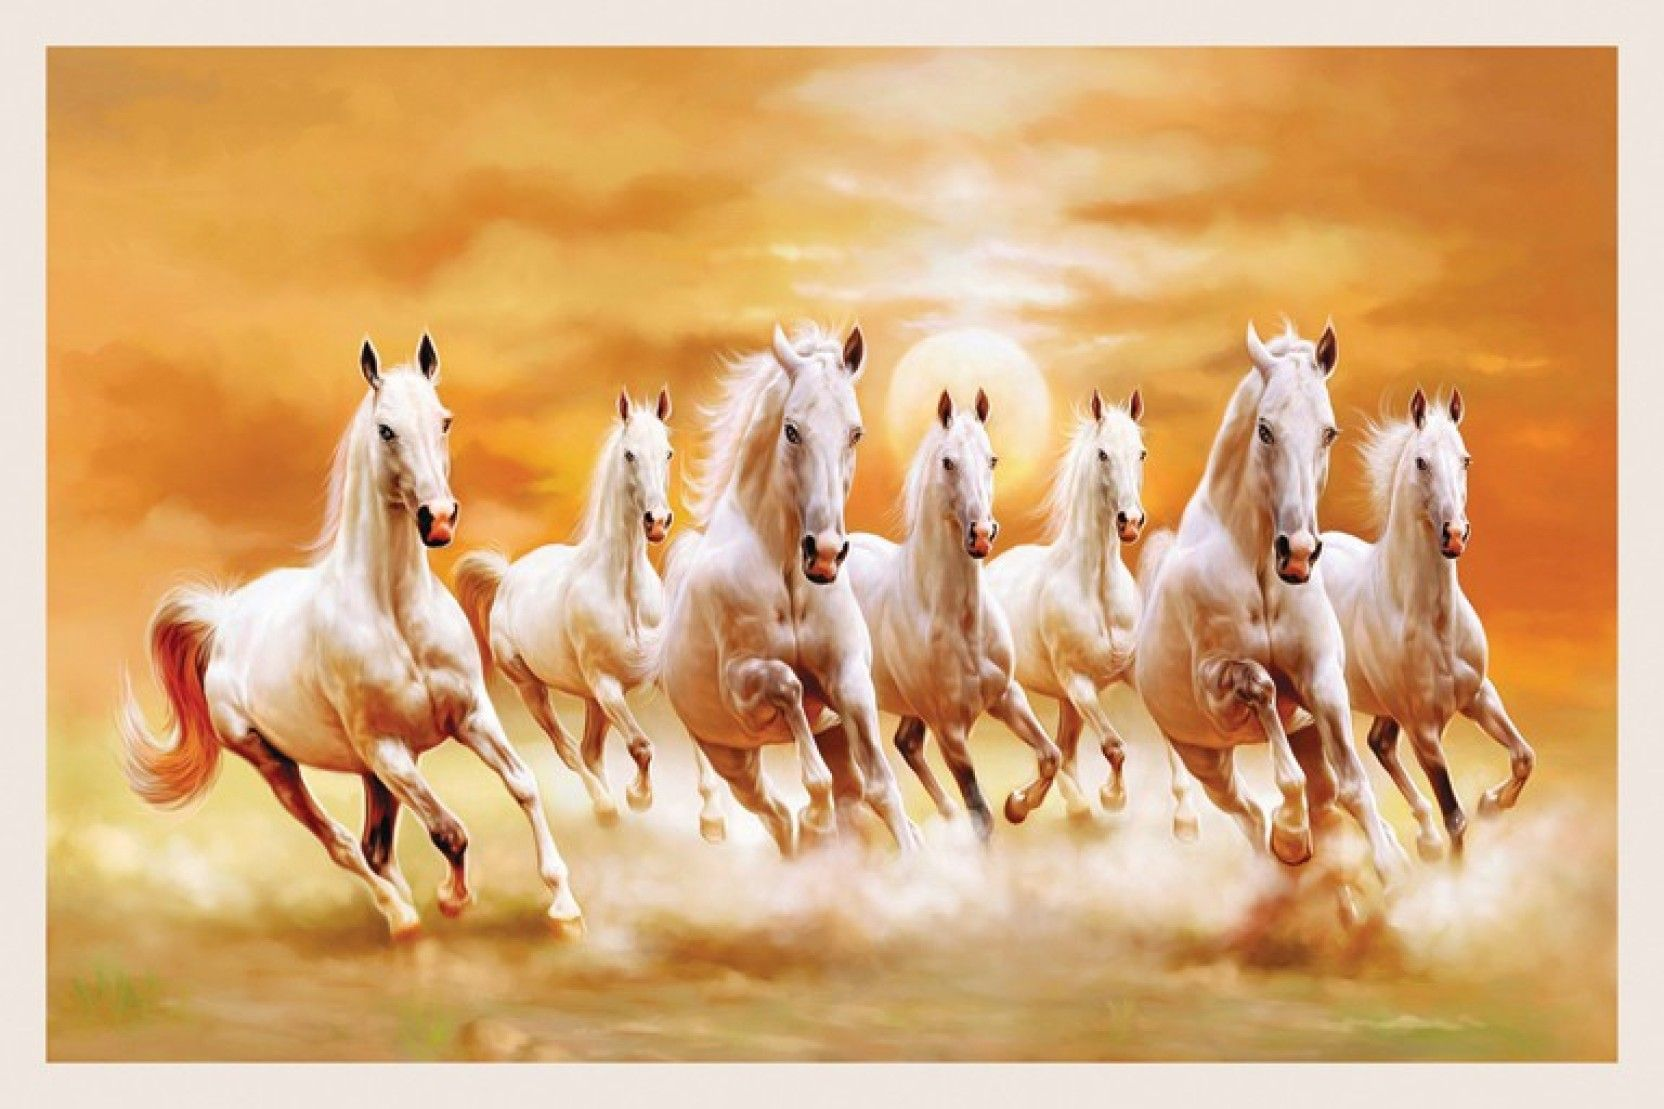 Seven White Horses 24x36 Inches Fine Art Print 7 White Horses Running Is Amazing Hd Wallpapers Fo Horse Canvas Painting Seven Horses Painting Horse Wallpaper